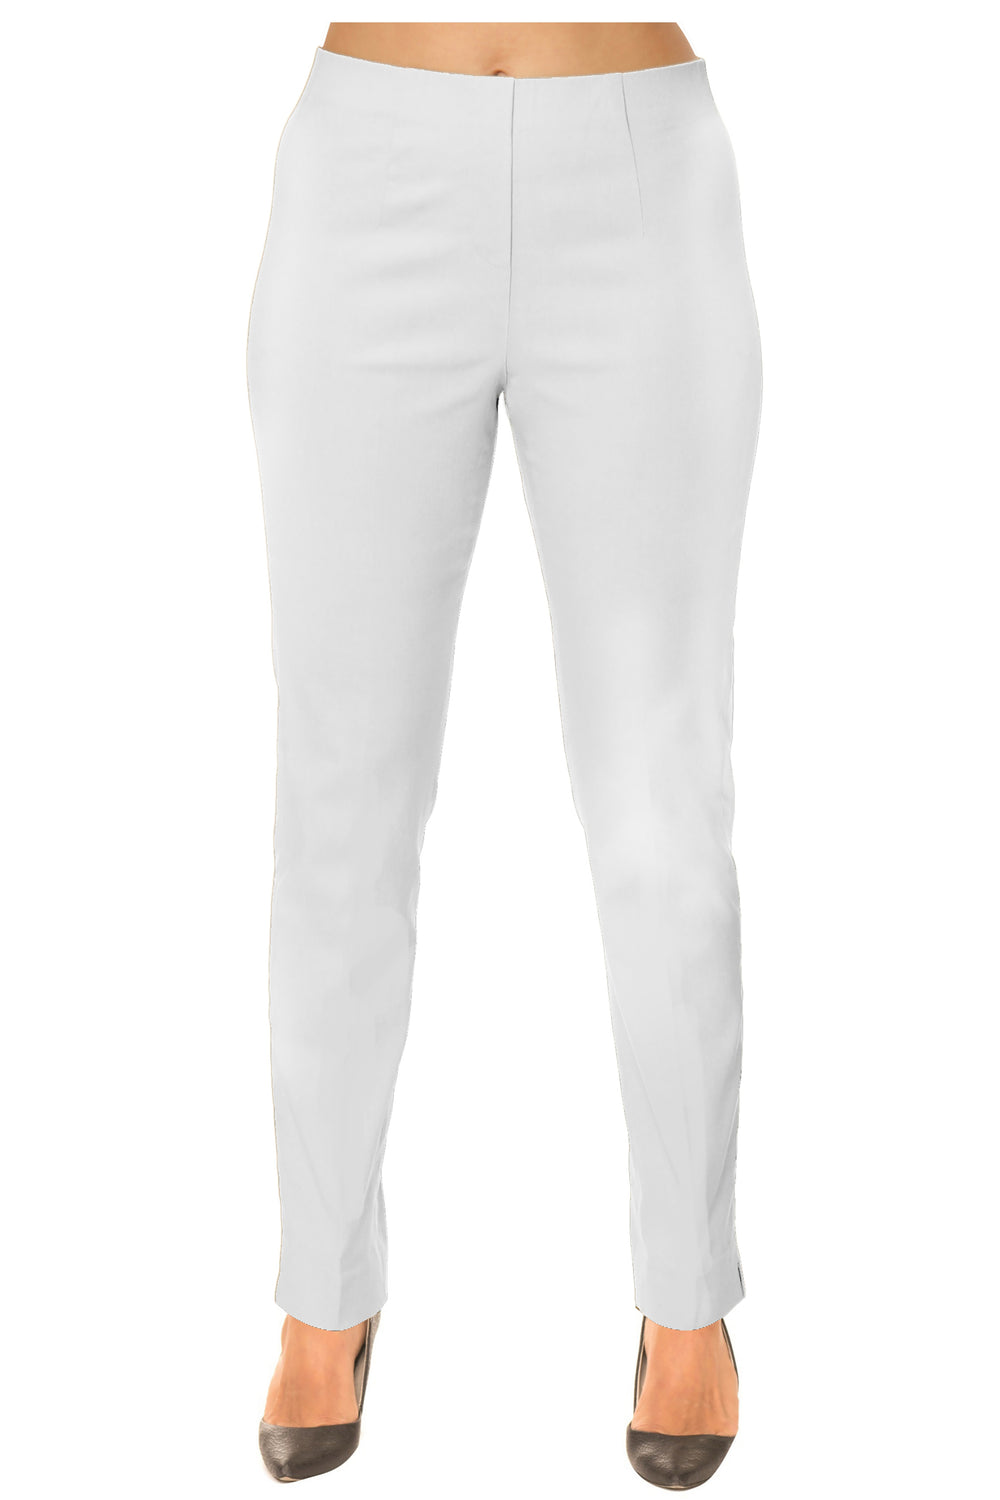 Sasha Pant - Basic Colors